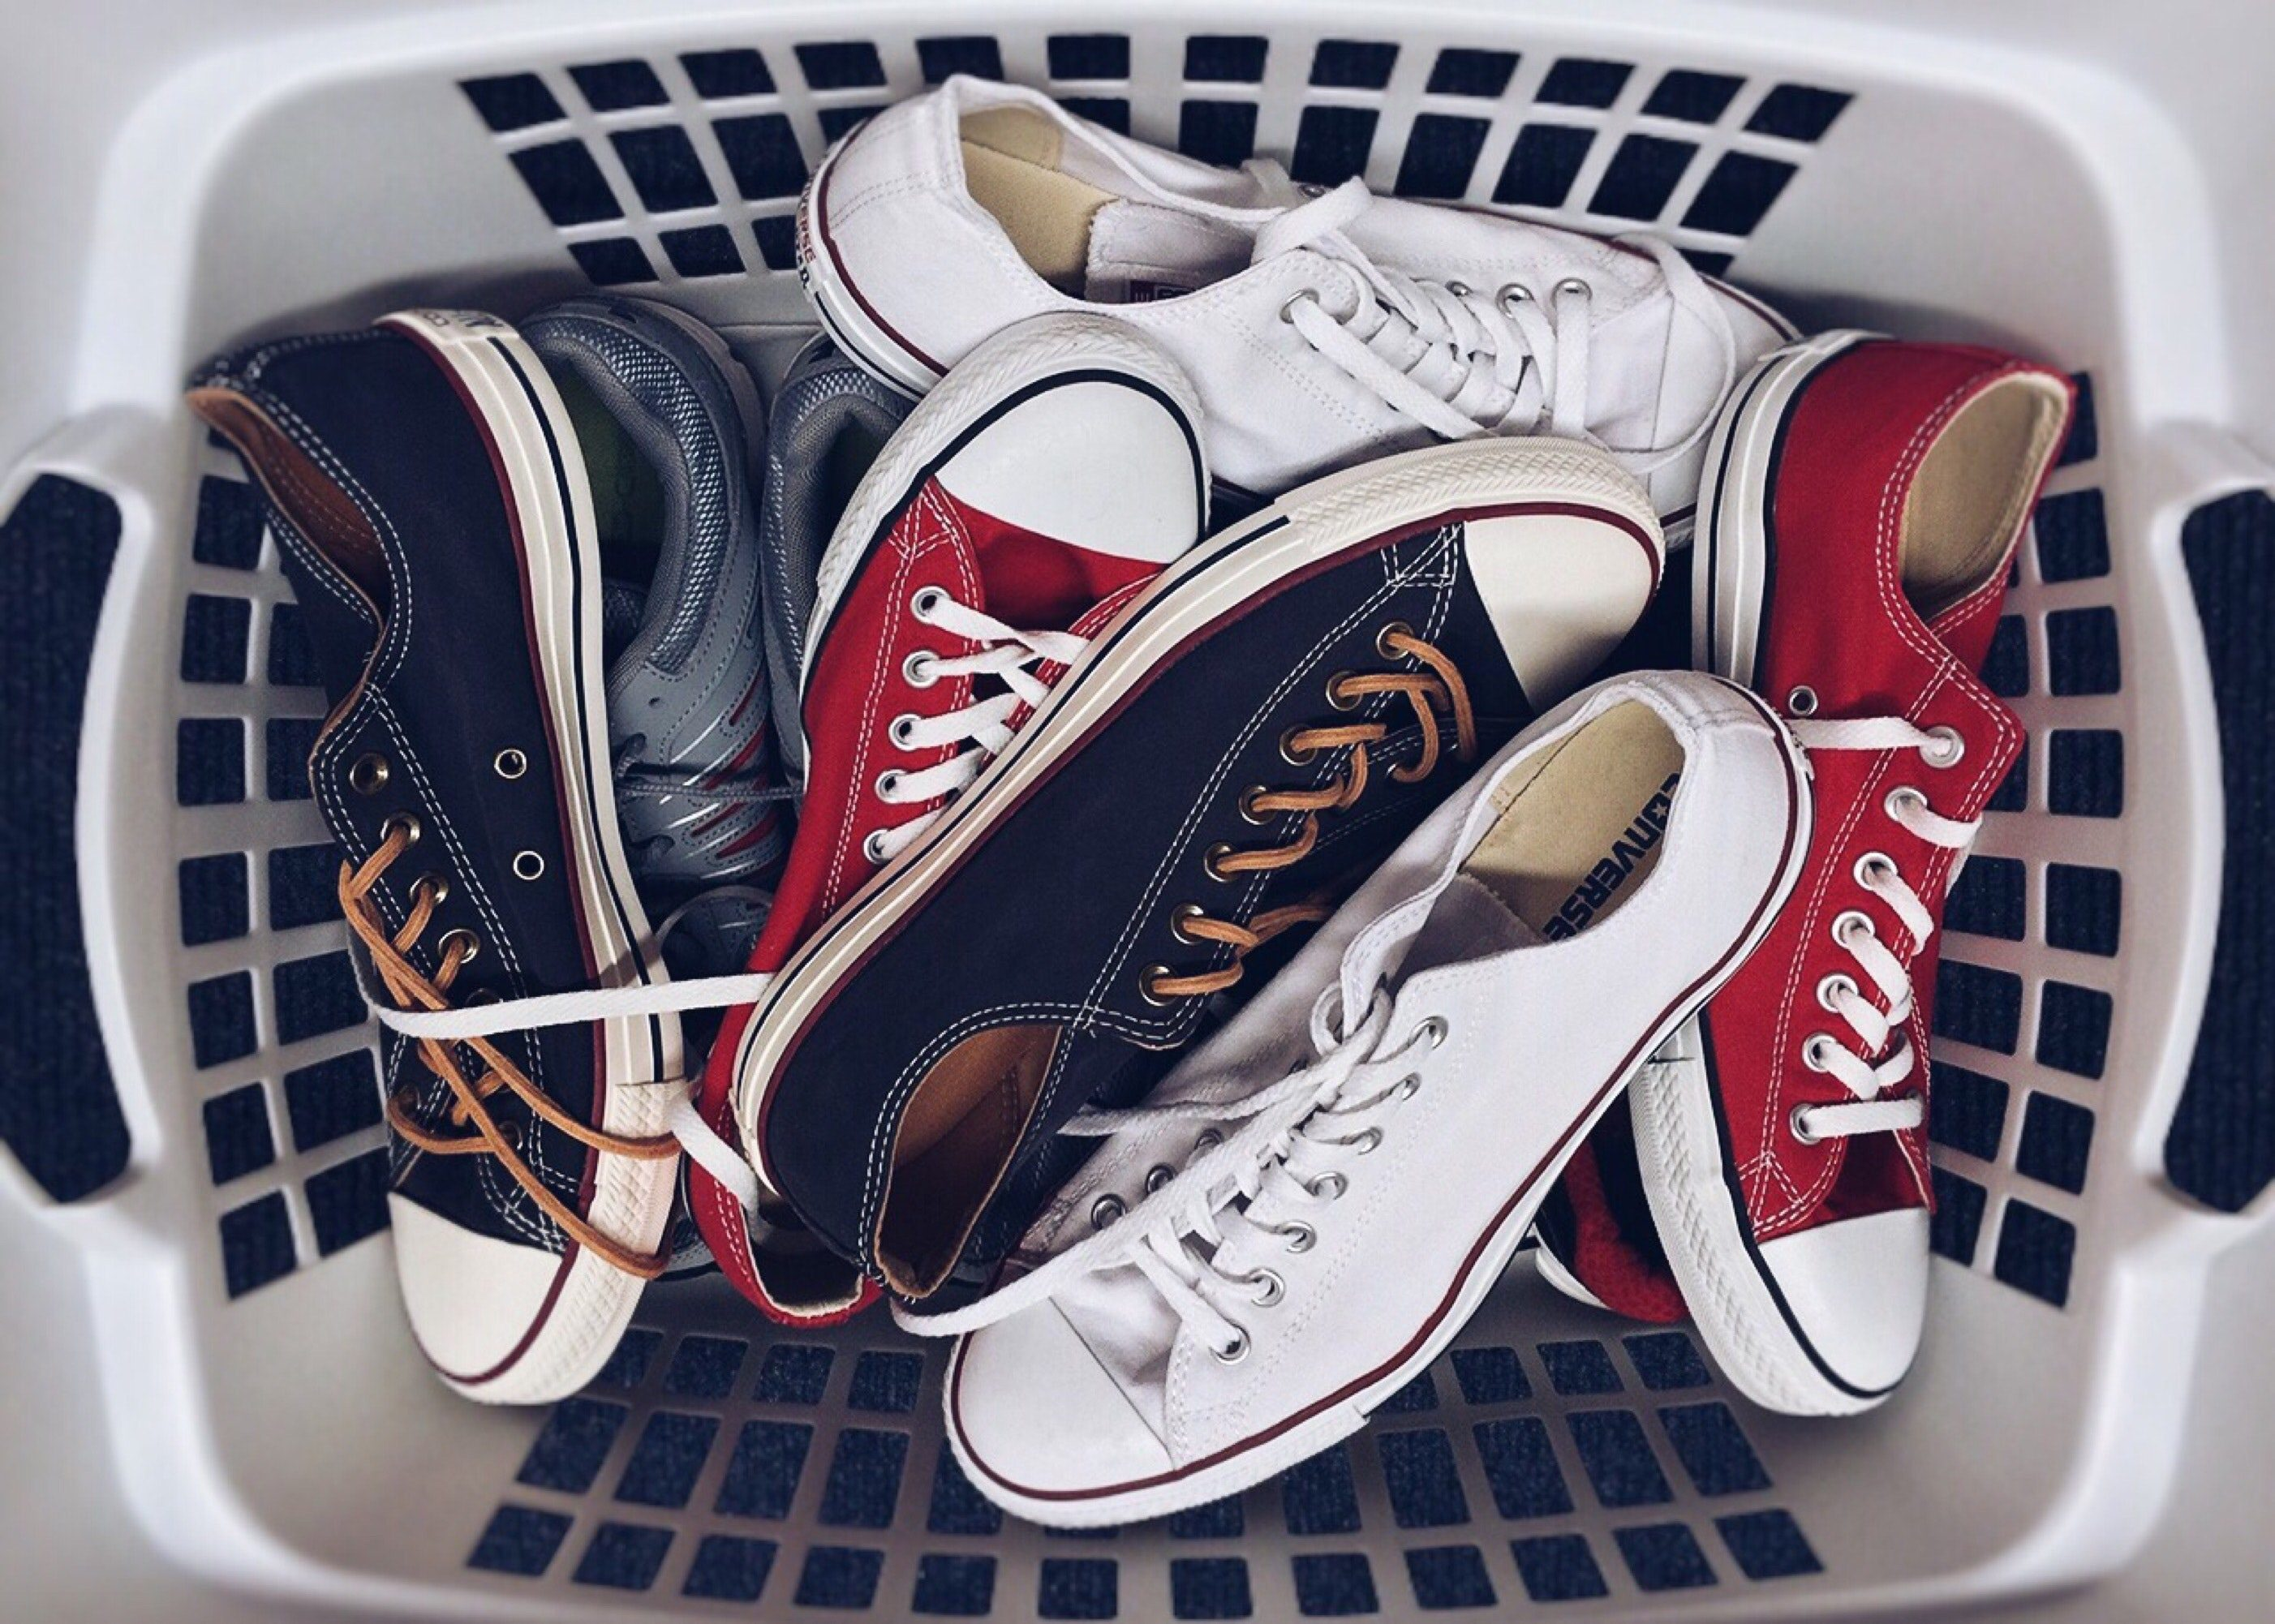 Washed trainers in a basket